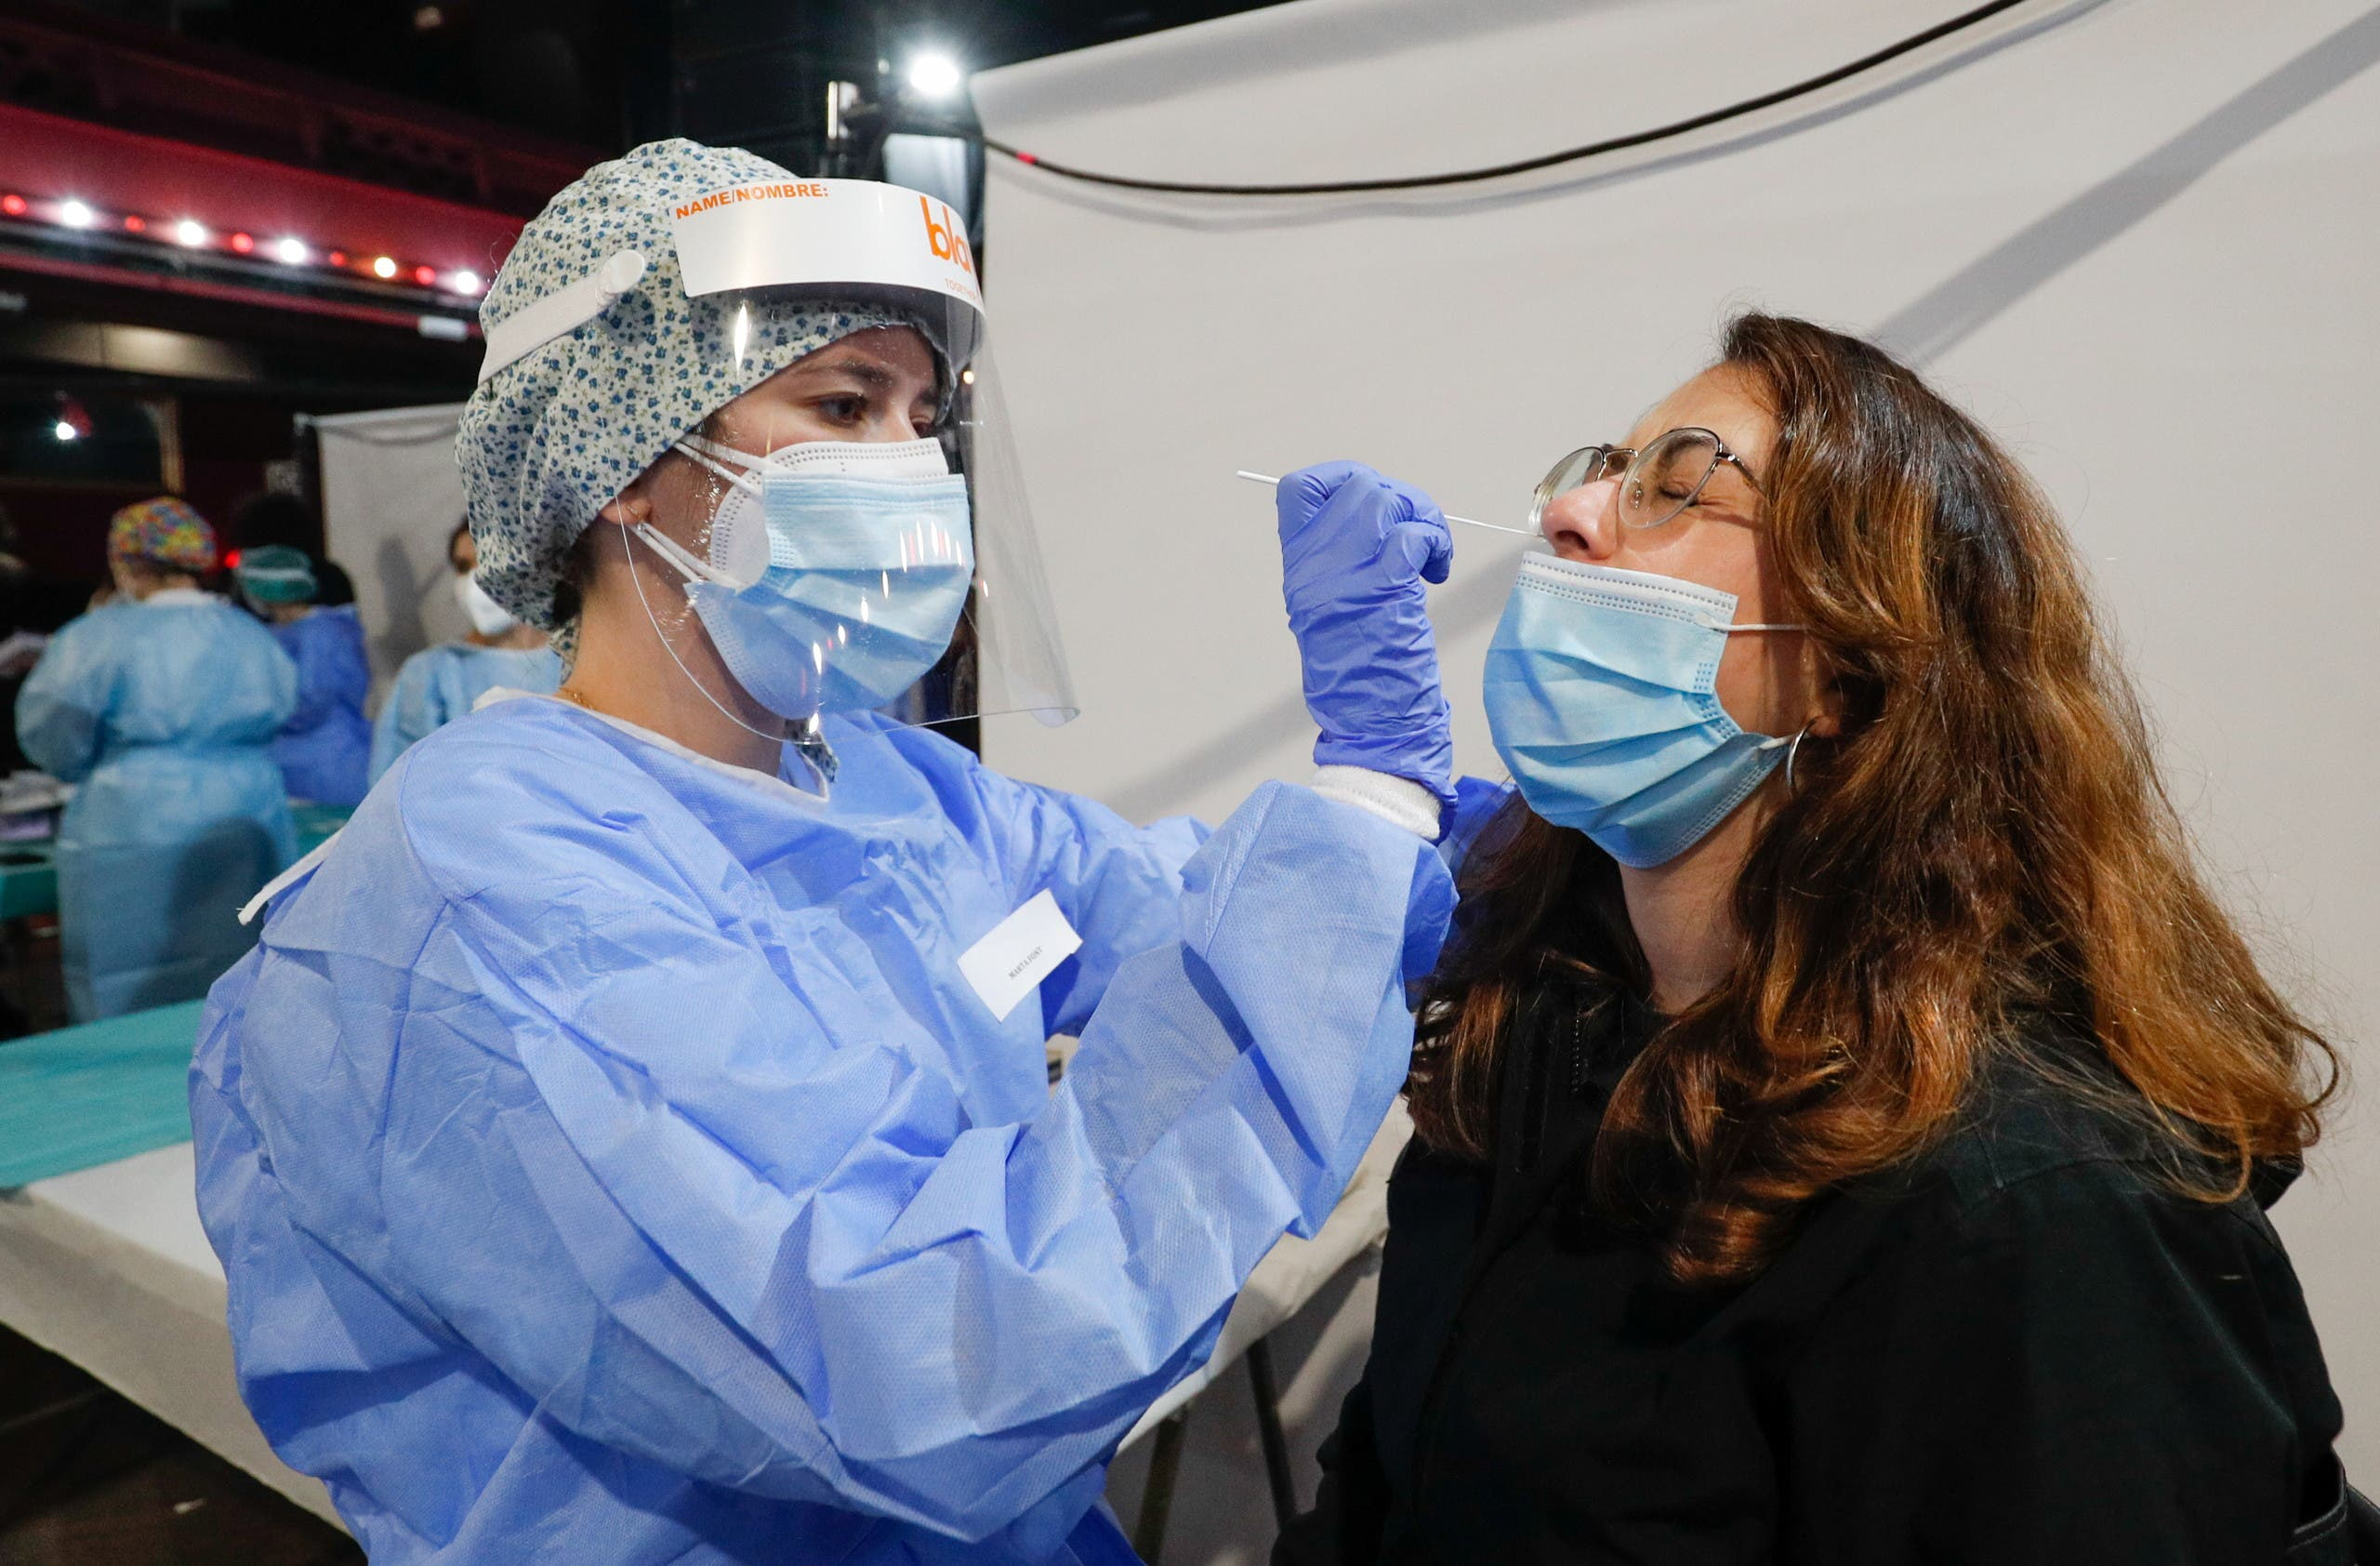 A healthcare worker collects a swab sample from a woman, before a concert of Love of Lesbian that will take place this afternoon with 5,000 spectators at the Palau Sant Jordi, amid the coronavirus disease (COVID-19) pandemic, in Barcelona, Spain, March 27, 2021. (Reuters)